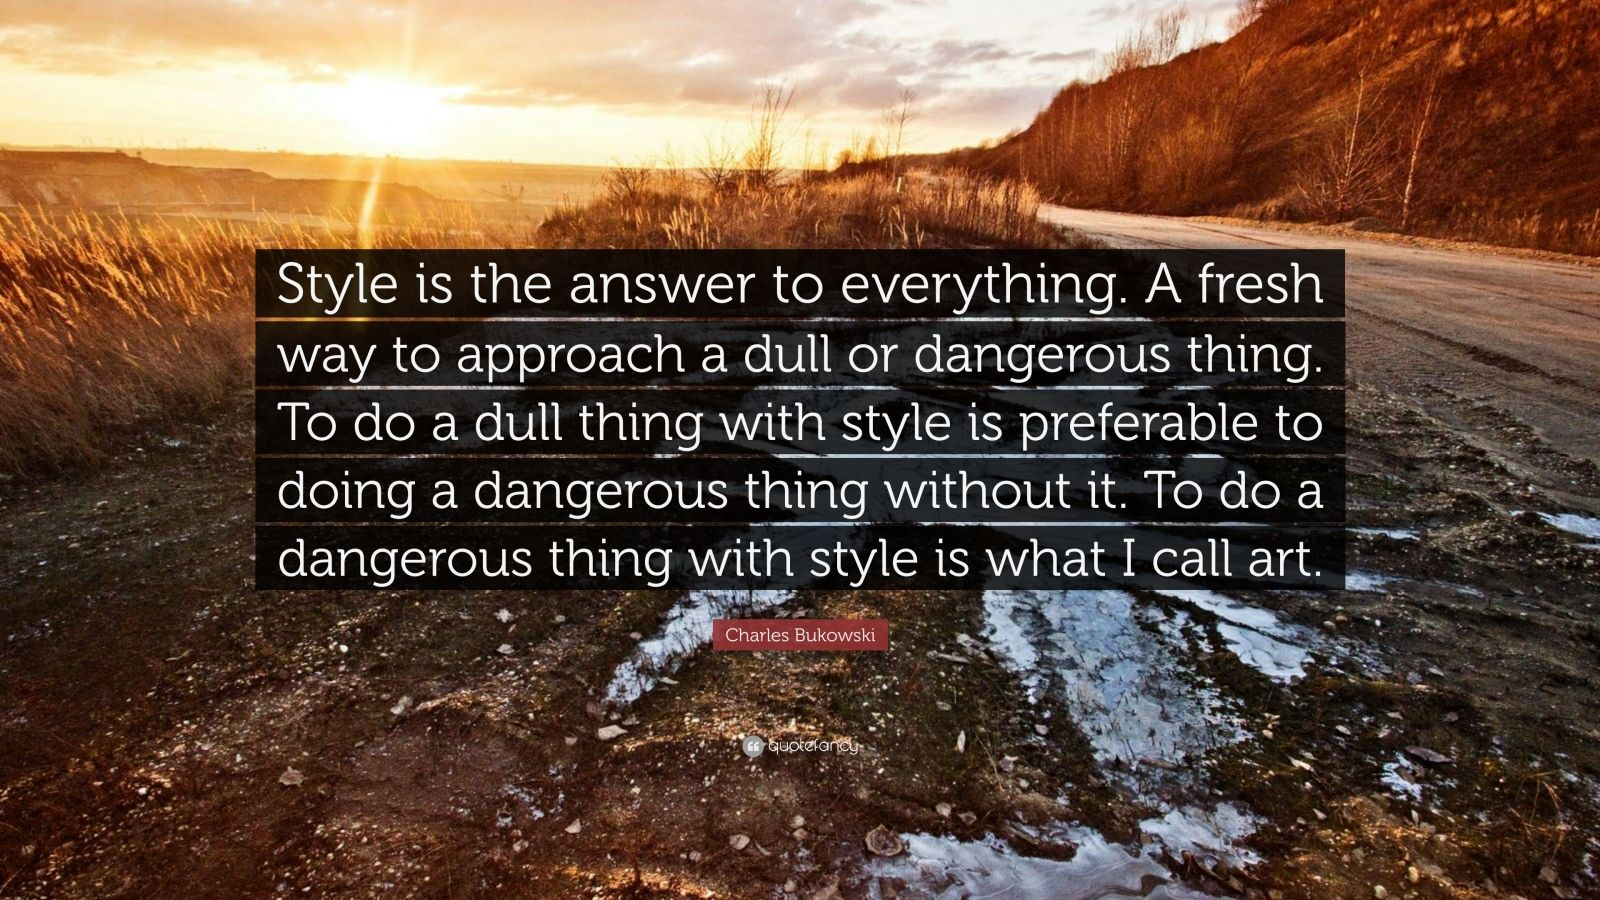 """Charles Bukowski Quote: """"Style is the answer to everything. A fresh way to approach a dull or dangerous thing. To do a dull thing with style is preferable to doing a dangerous thing without it. To do a dangerous thing with style is what I call art."""""""